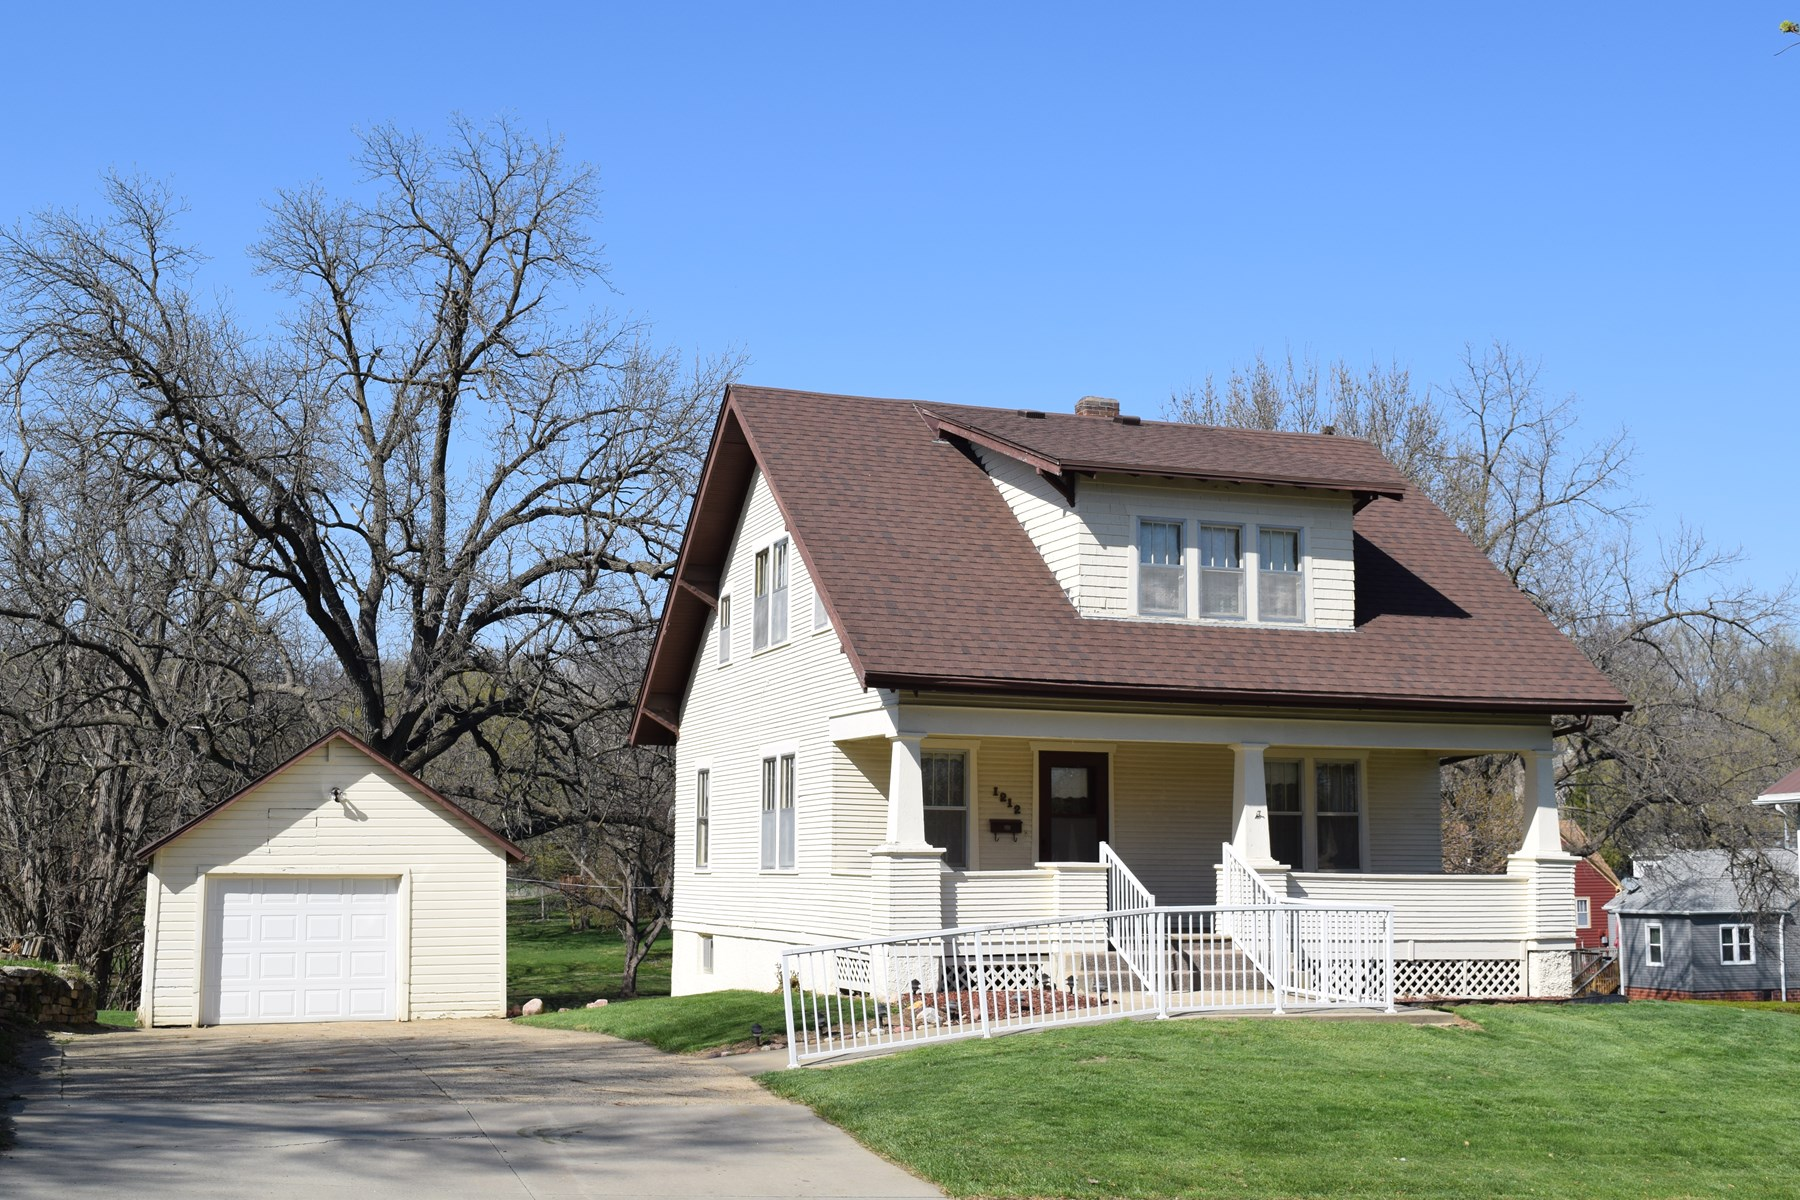 3 BR Craftsman home on .69 Acres in Harlan, IA, Shelby Co.